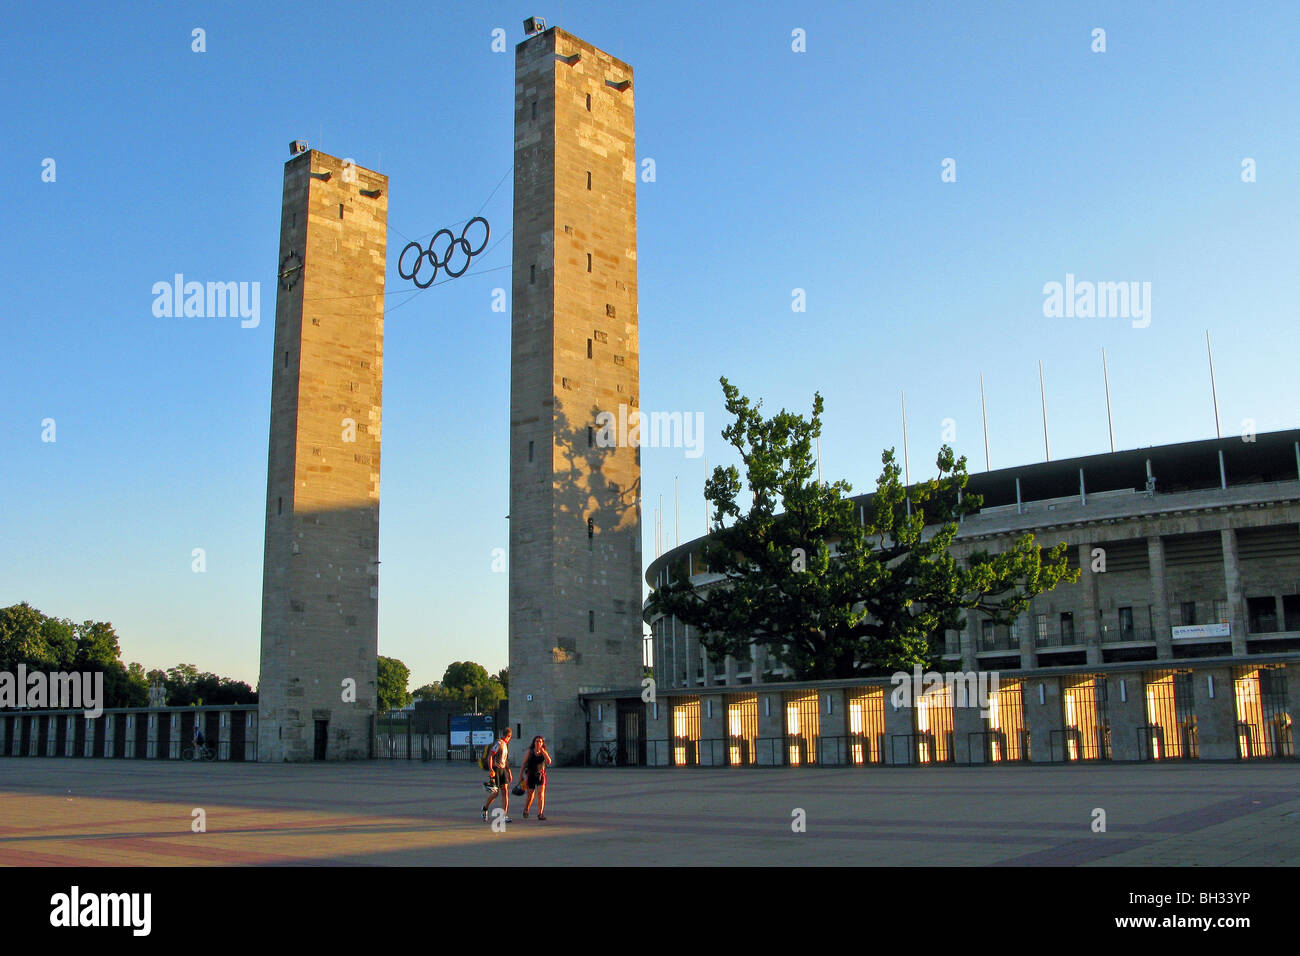 OLYMPIC STADIUM, OLYMPIASTADION BUILT FOR THE 1936 OLYMPIC GAMES, FASCIST ARCHITECTURE BY WERNER MARCH, BERLIN, - Stock Image